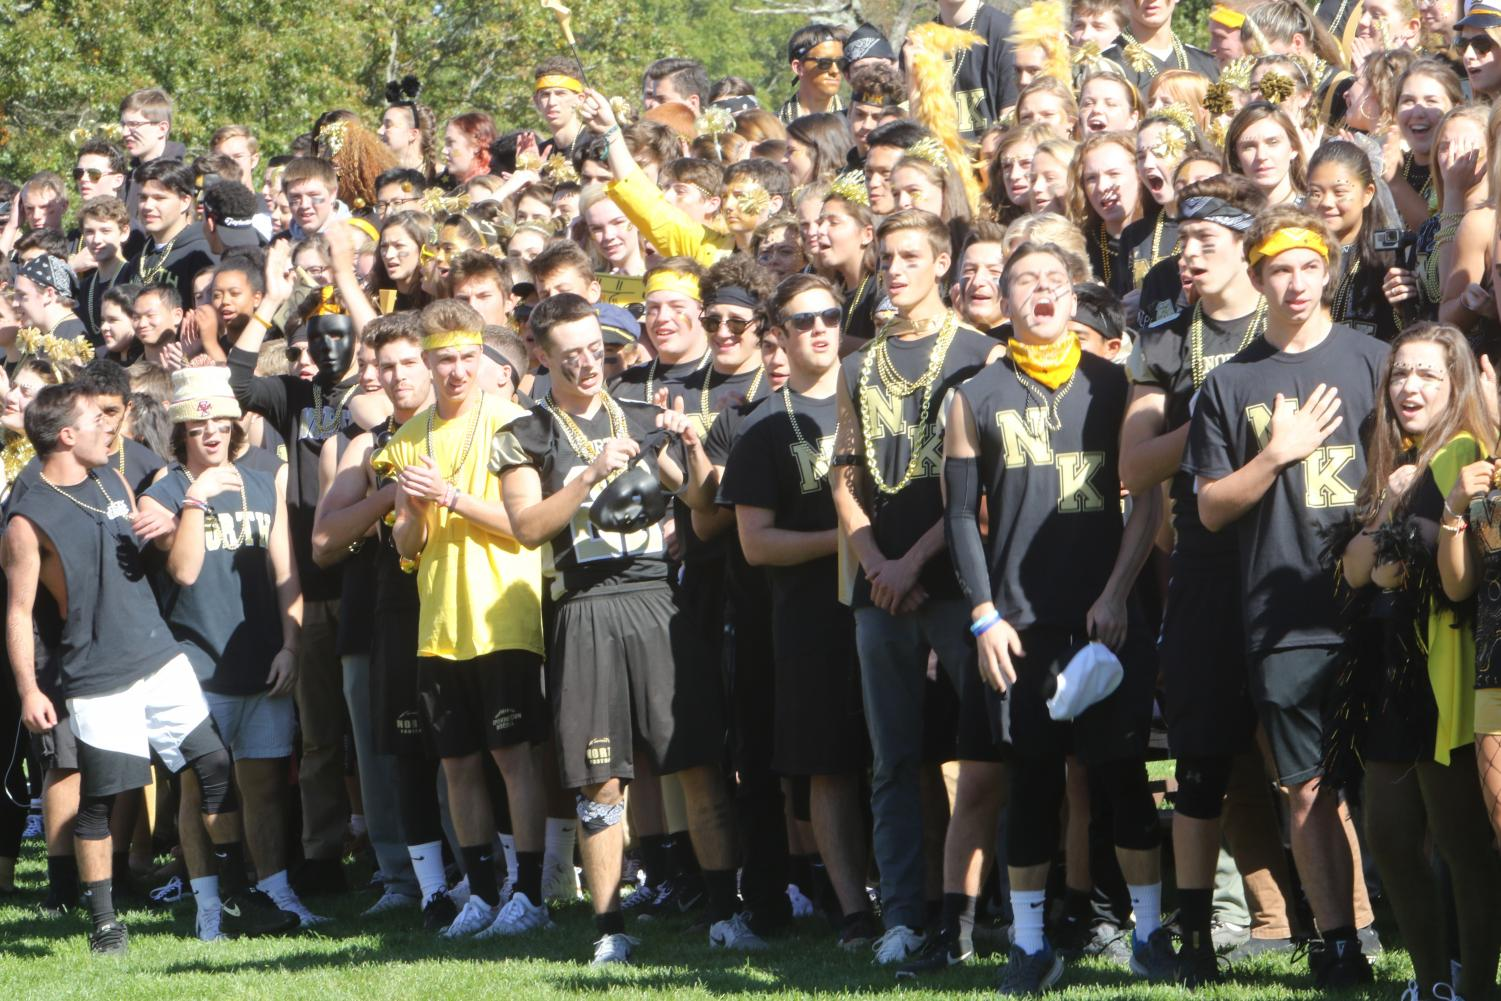 Seniors out on the field wearing black and gold. Picture Credit to Robert Silveria.